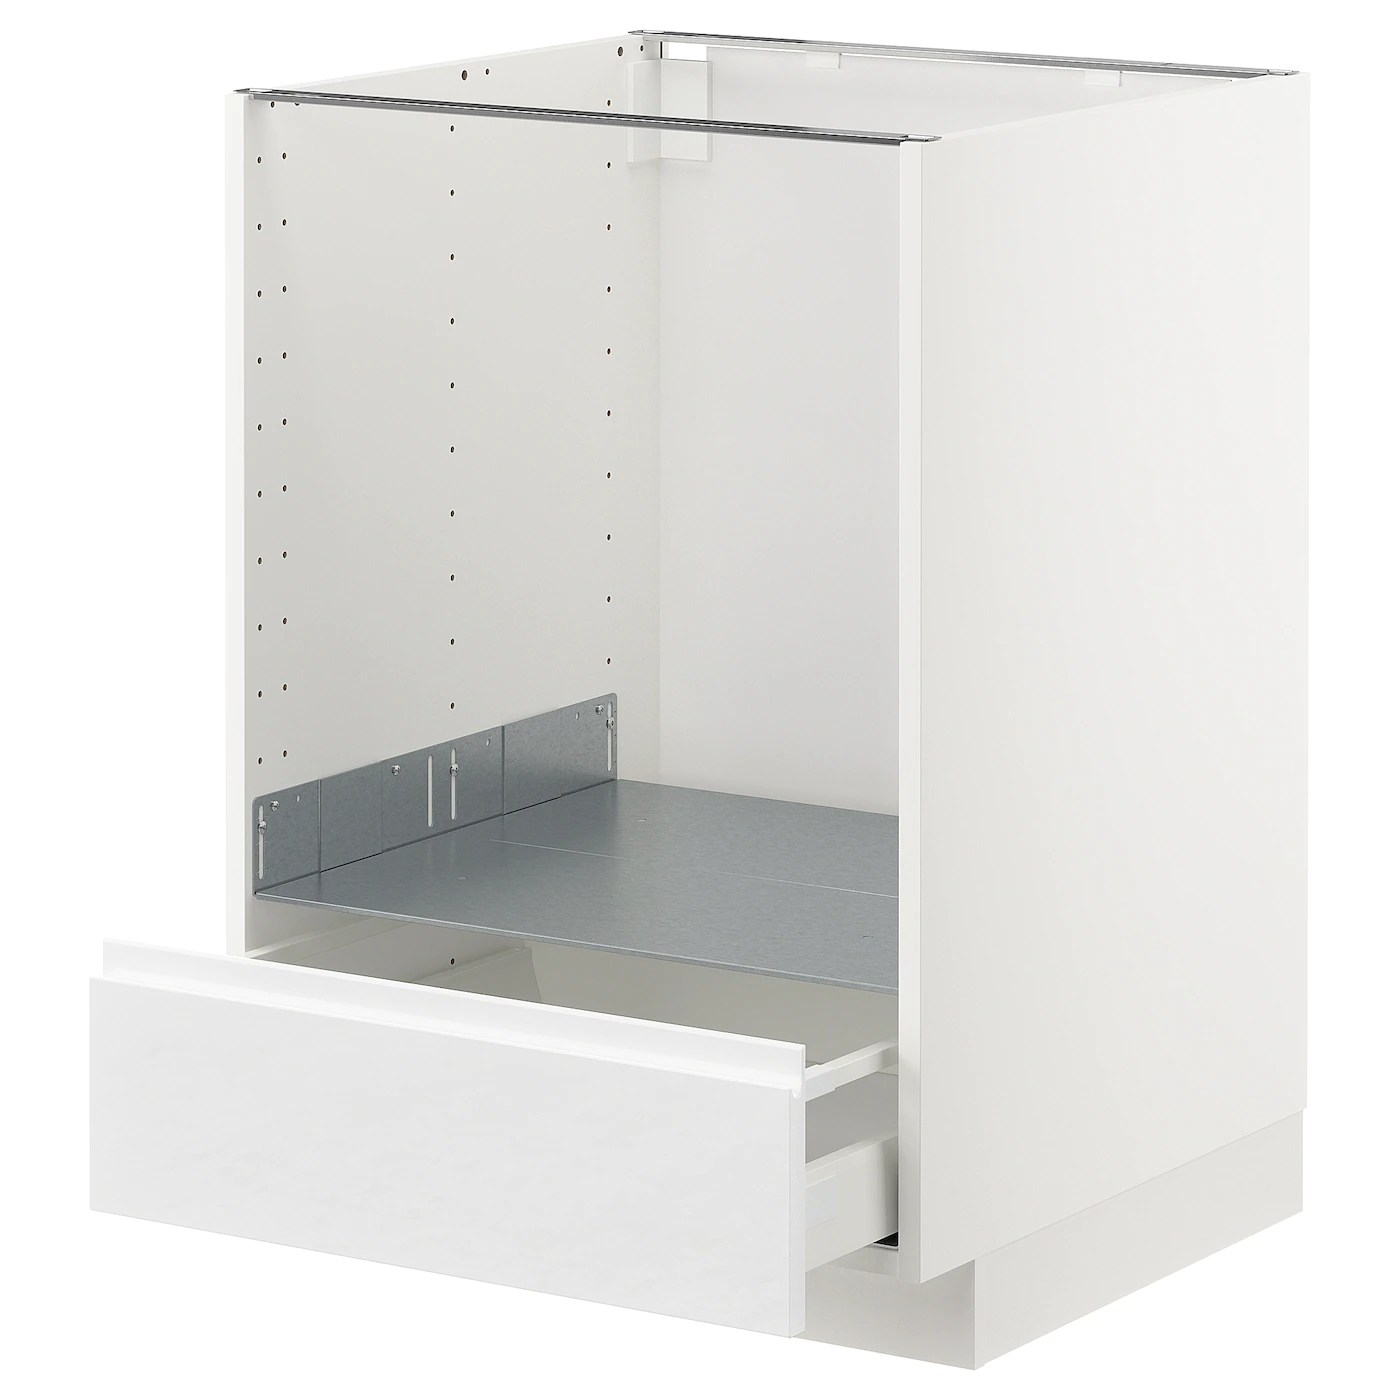 Ikea Metod Pdf Metod Maximera Base Cabinet For Oven With Drawer White Voxtorp High Gloss White